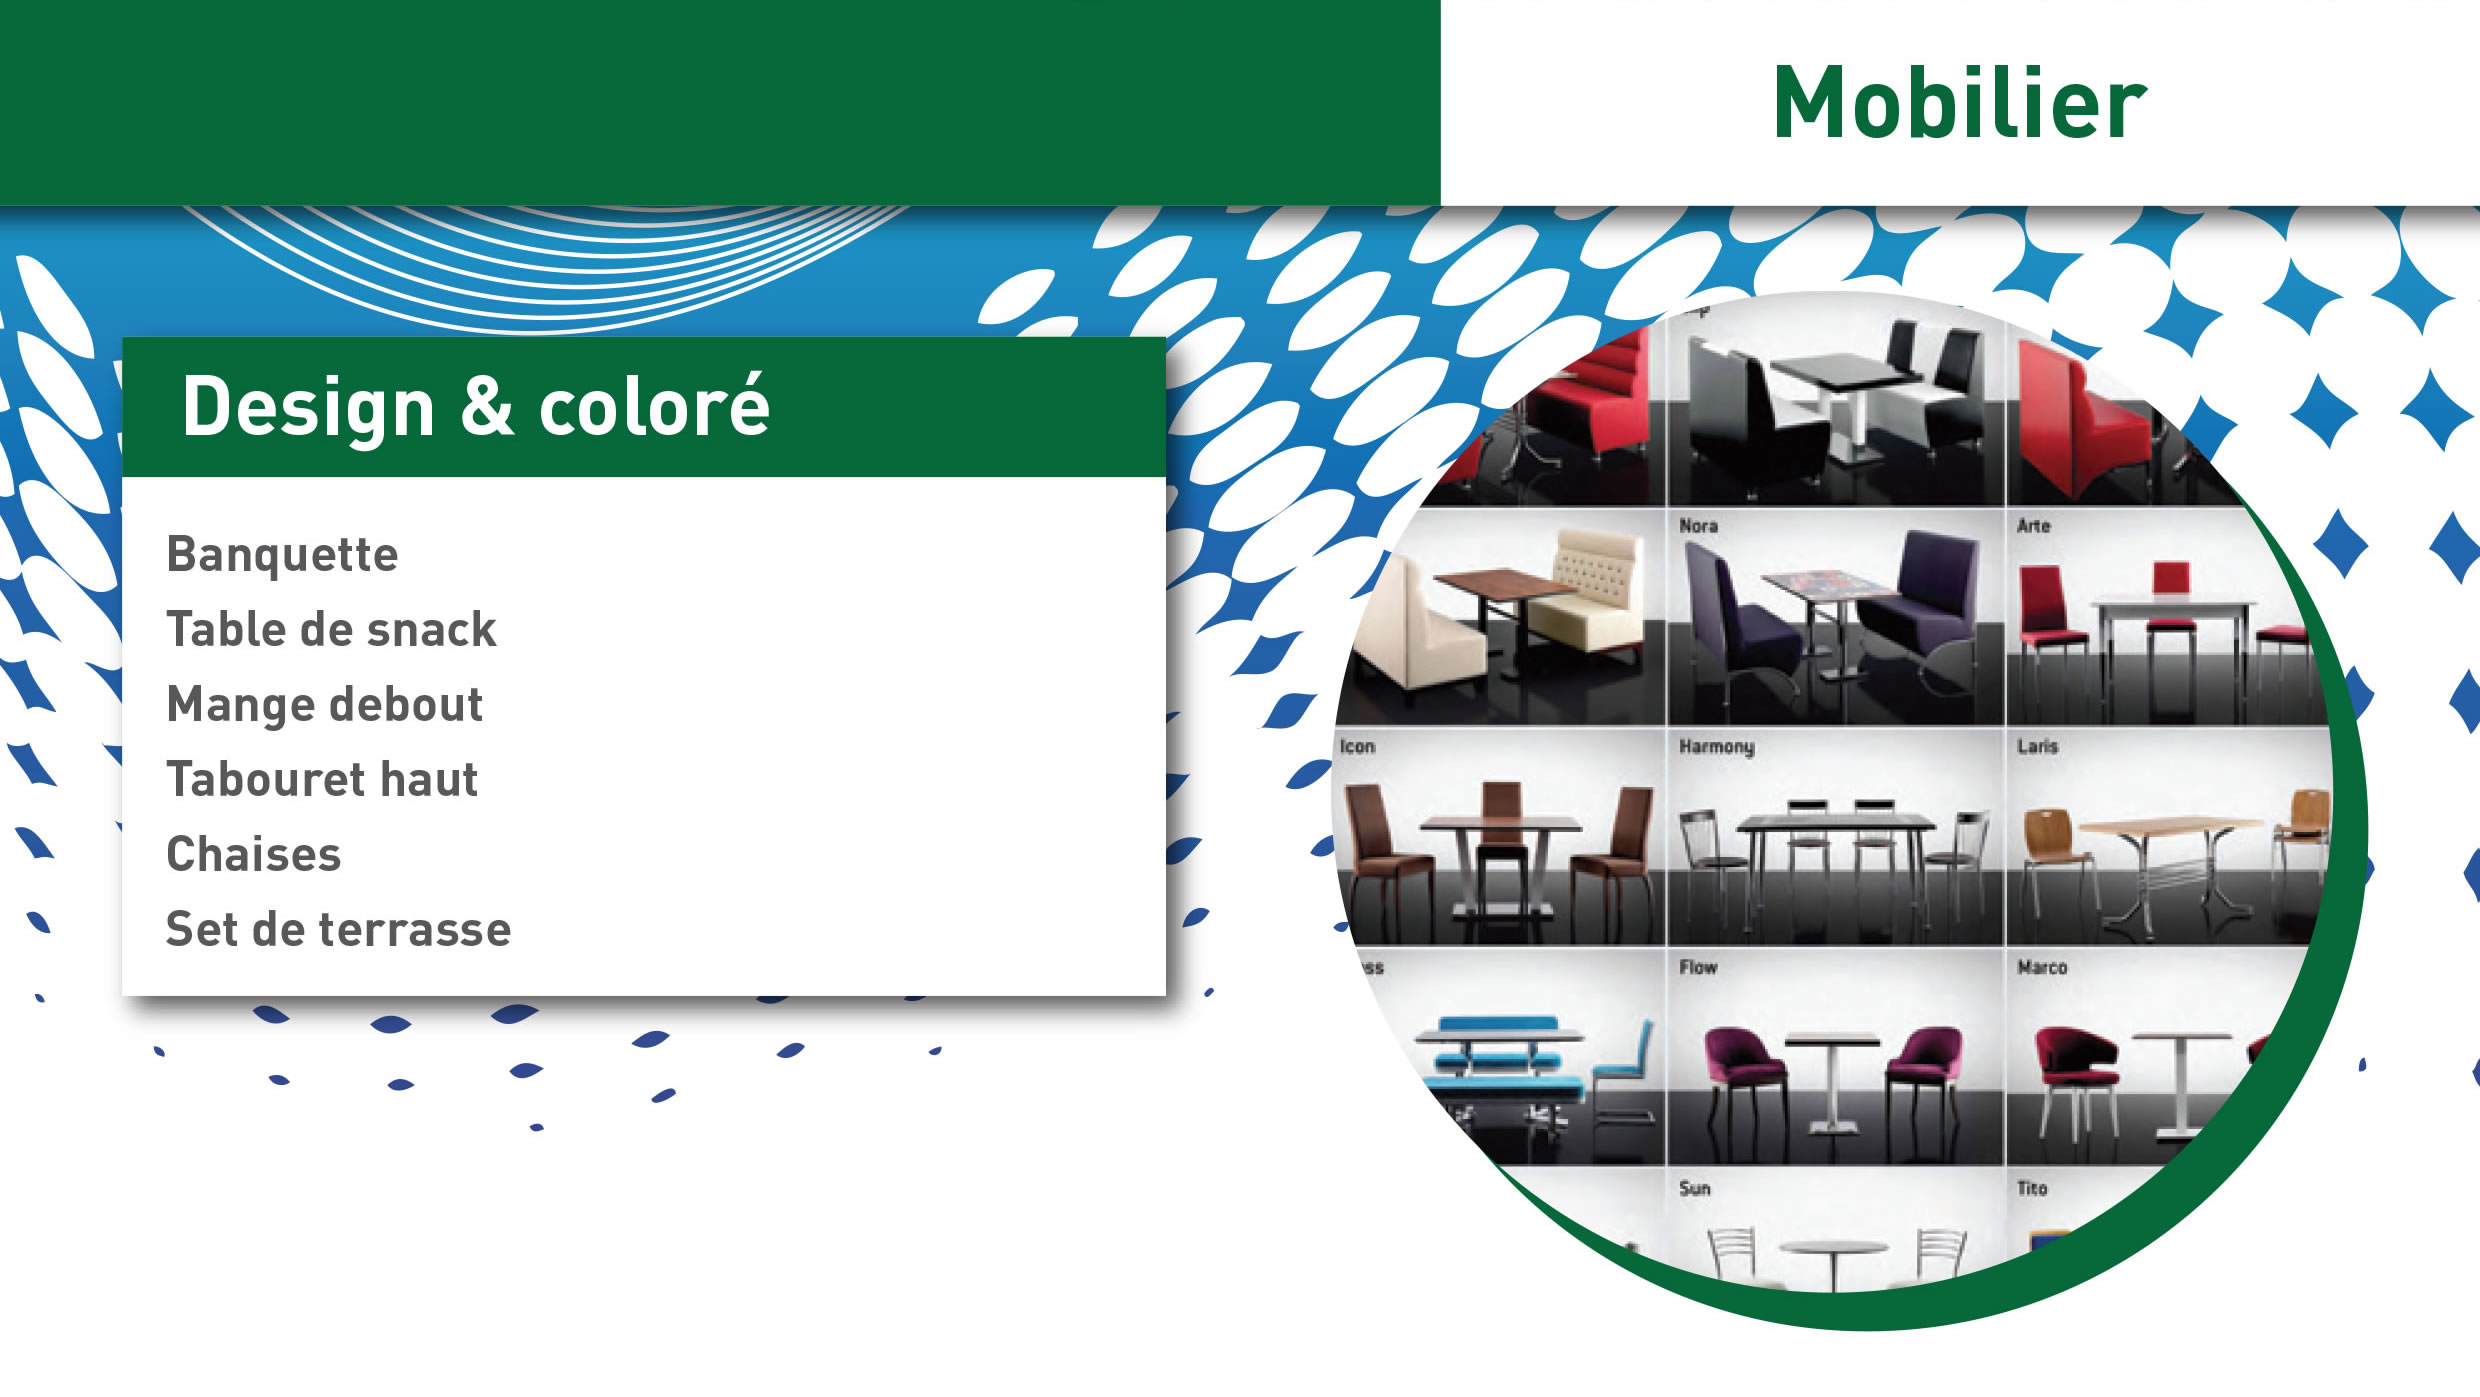 kdis_mobilier